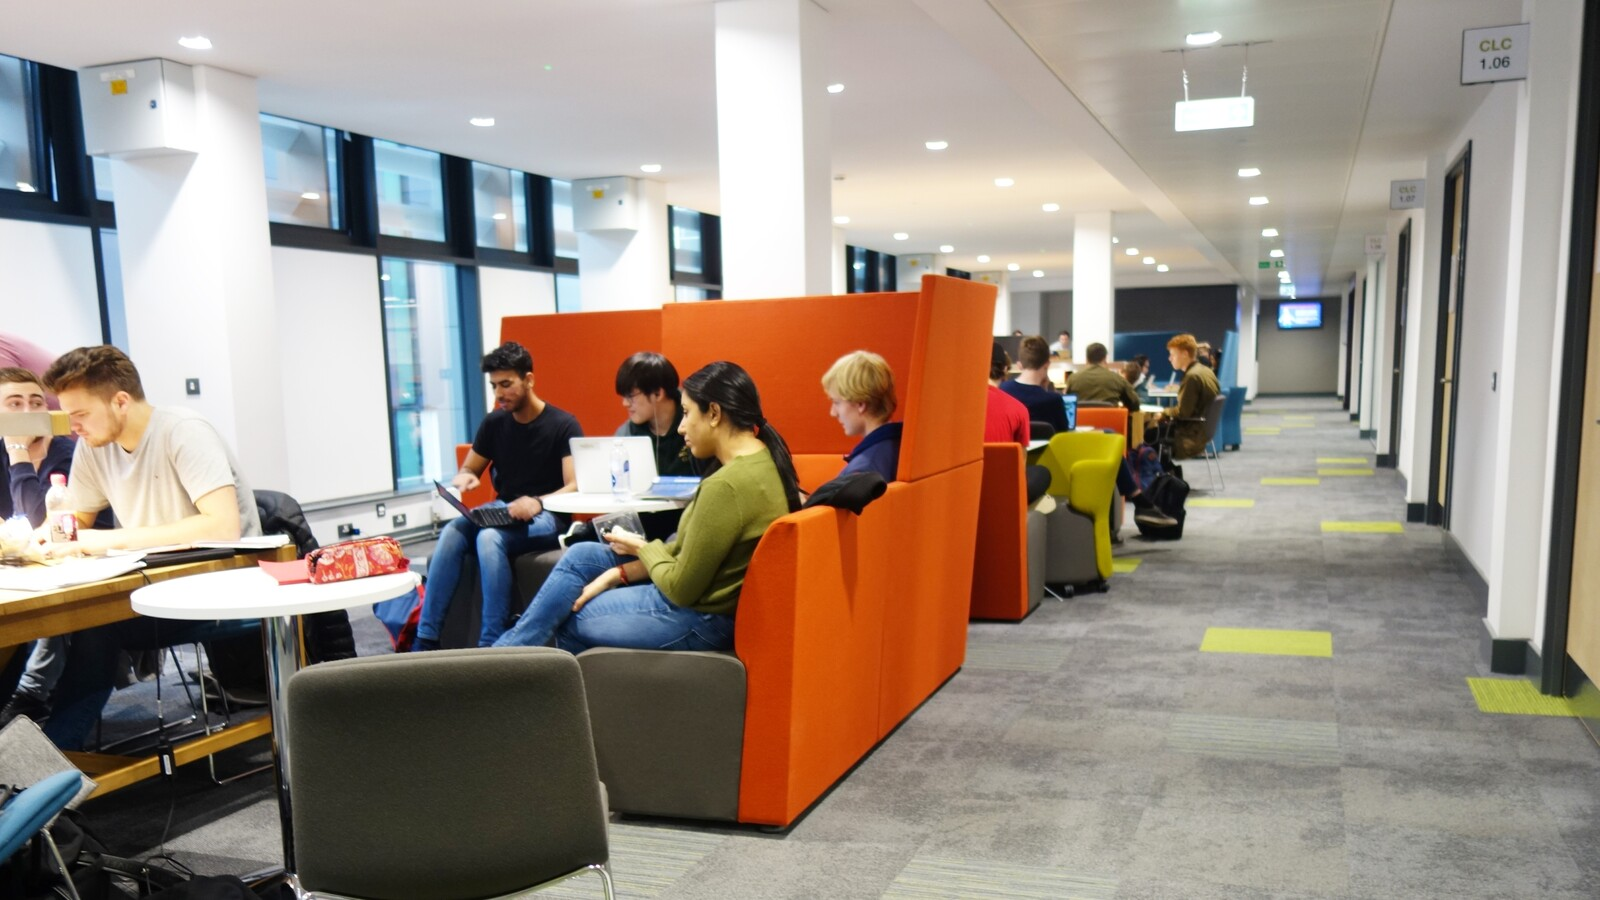 Clerici Building Breakout Space